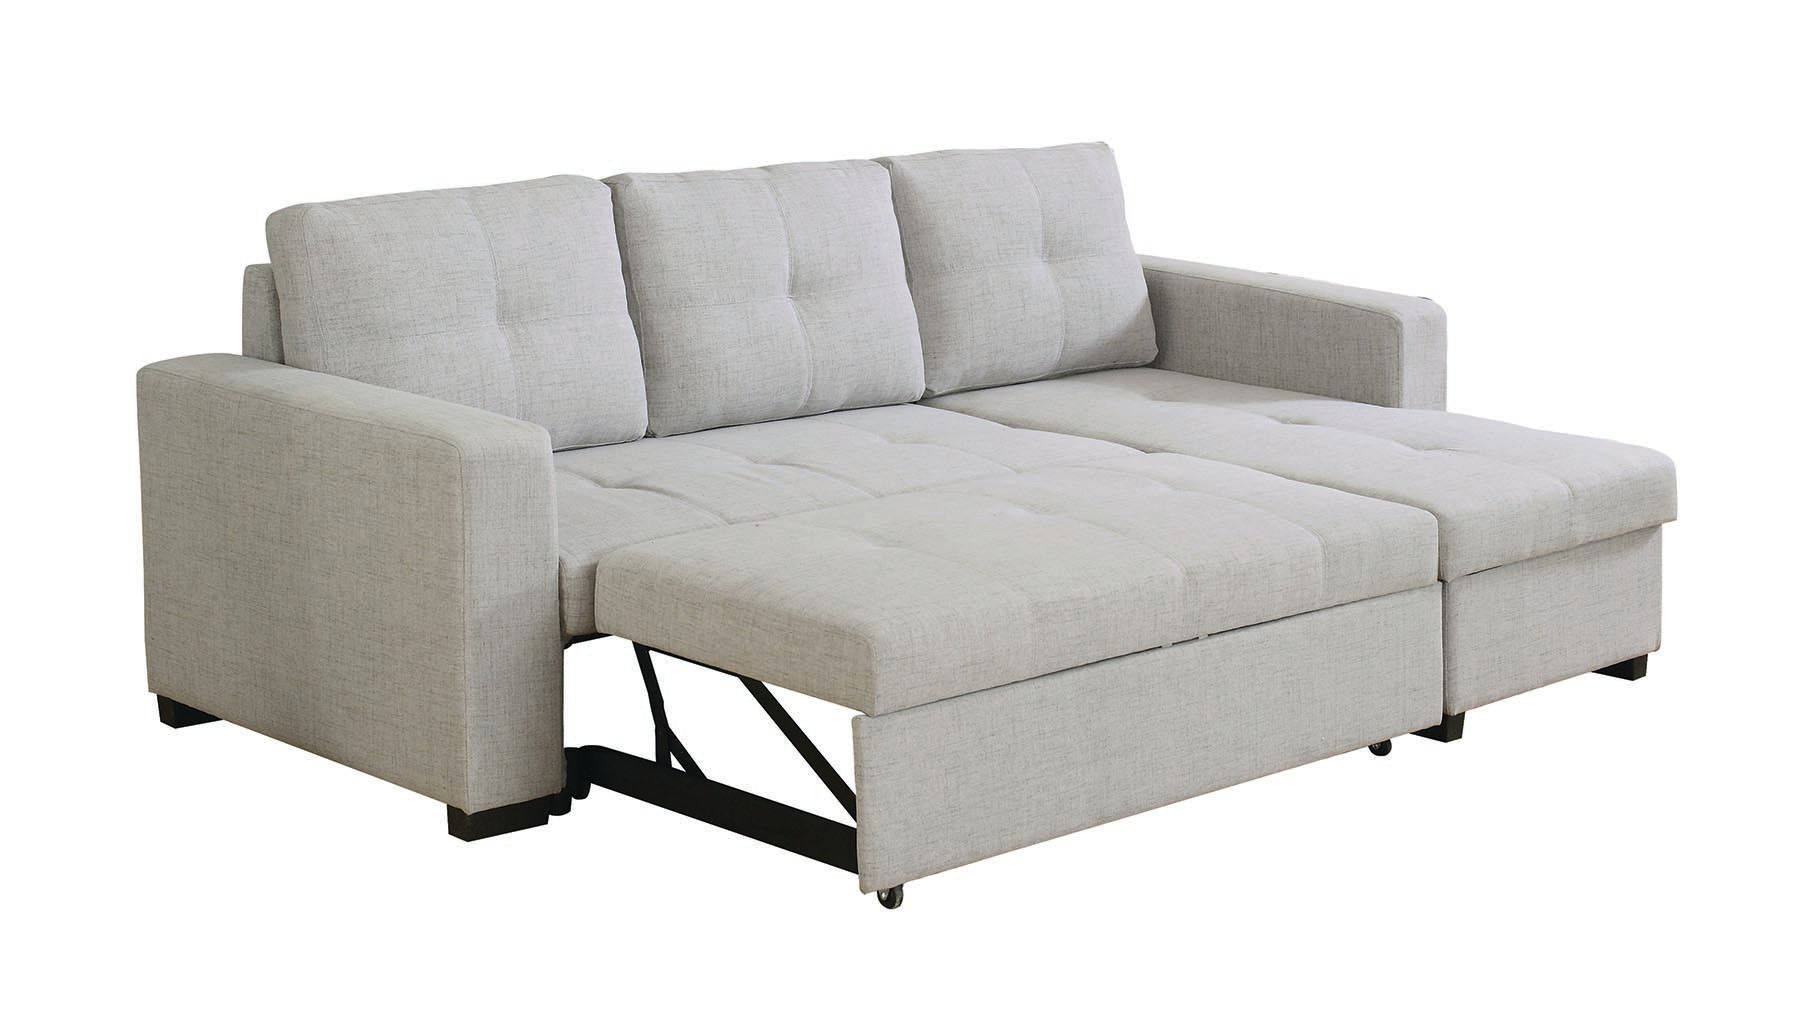 - How To Choose The Best Pull Out Sofa - Living Out Loud Los Angeles